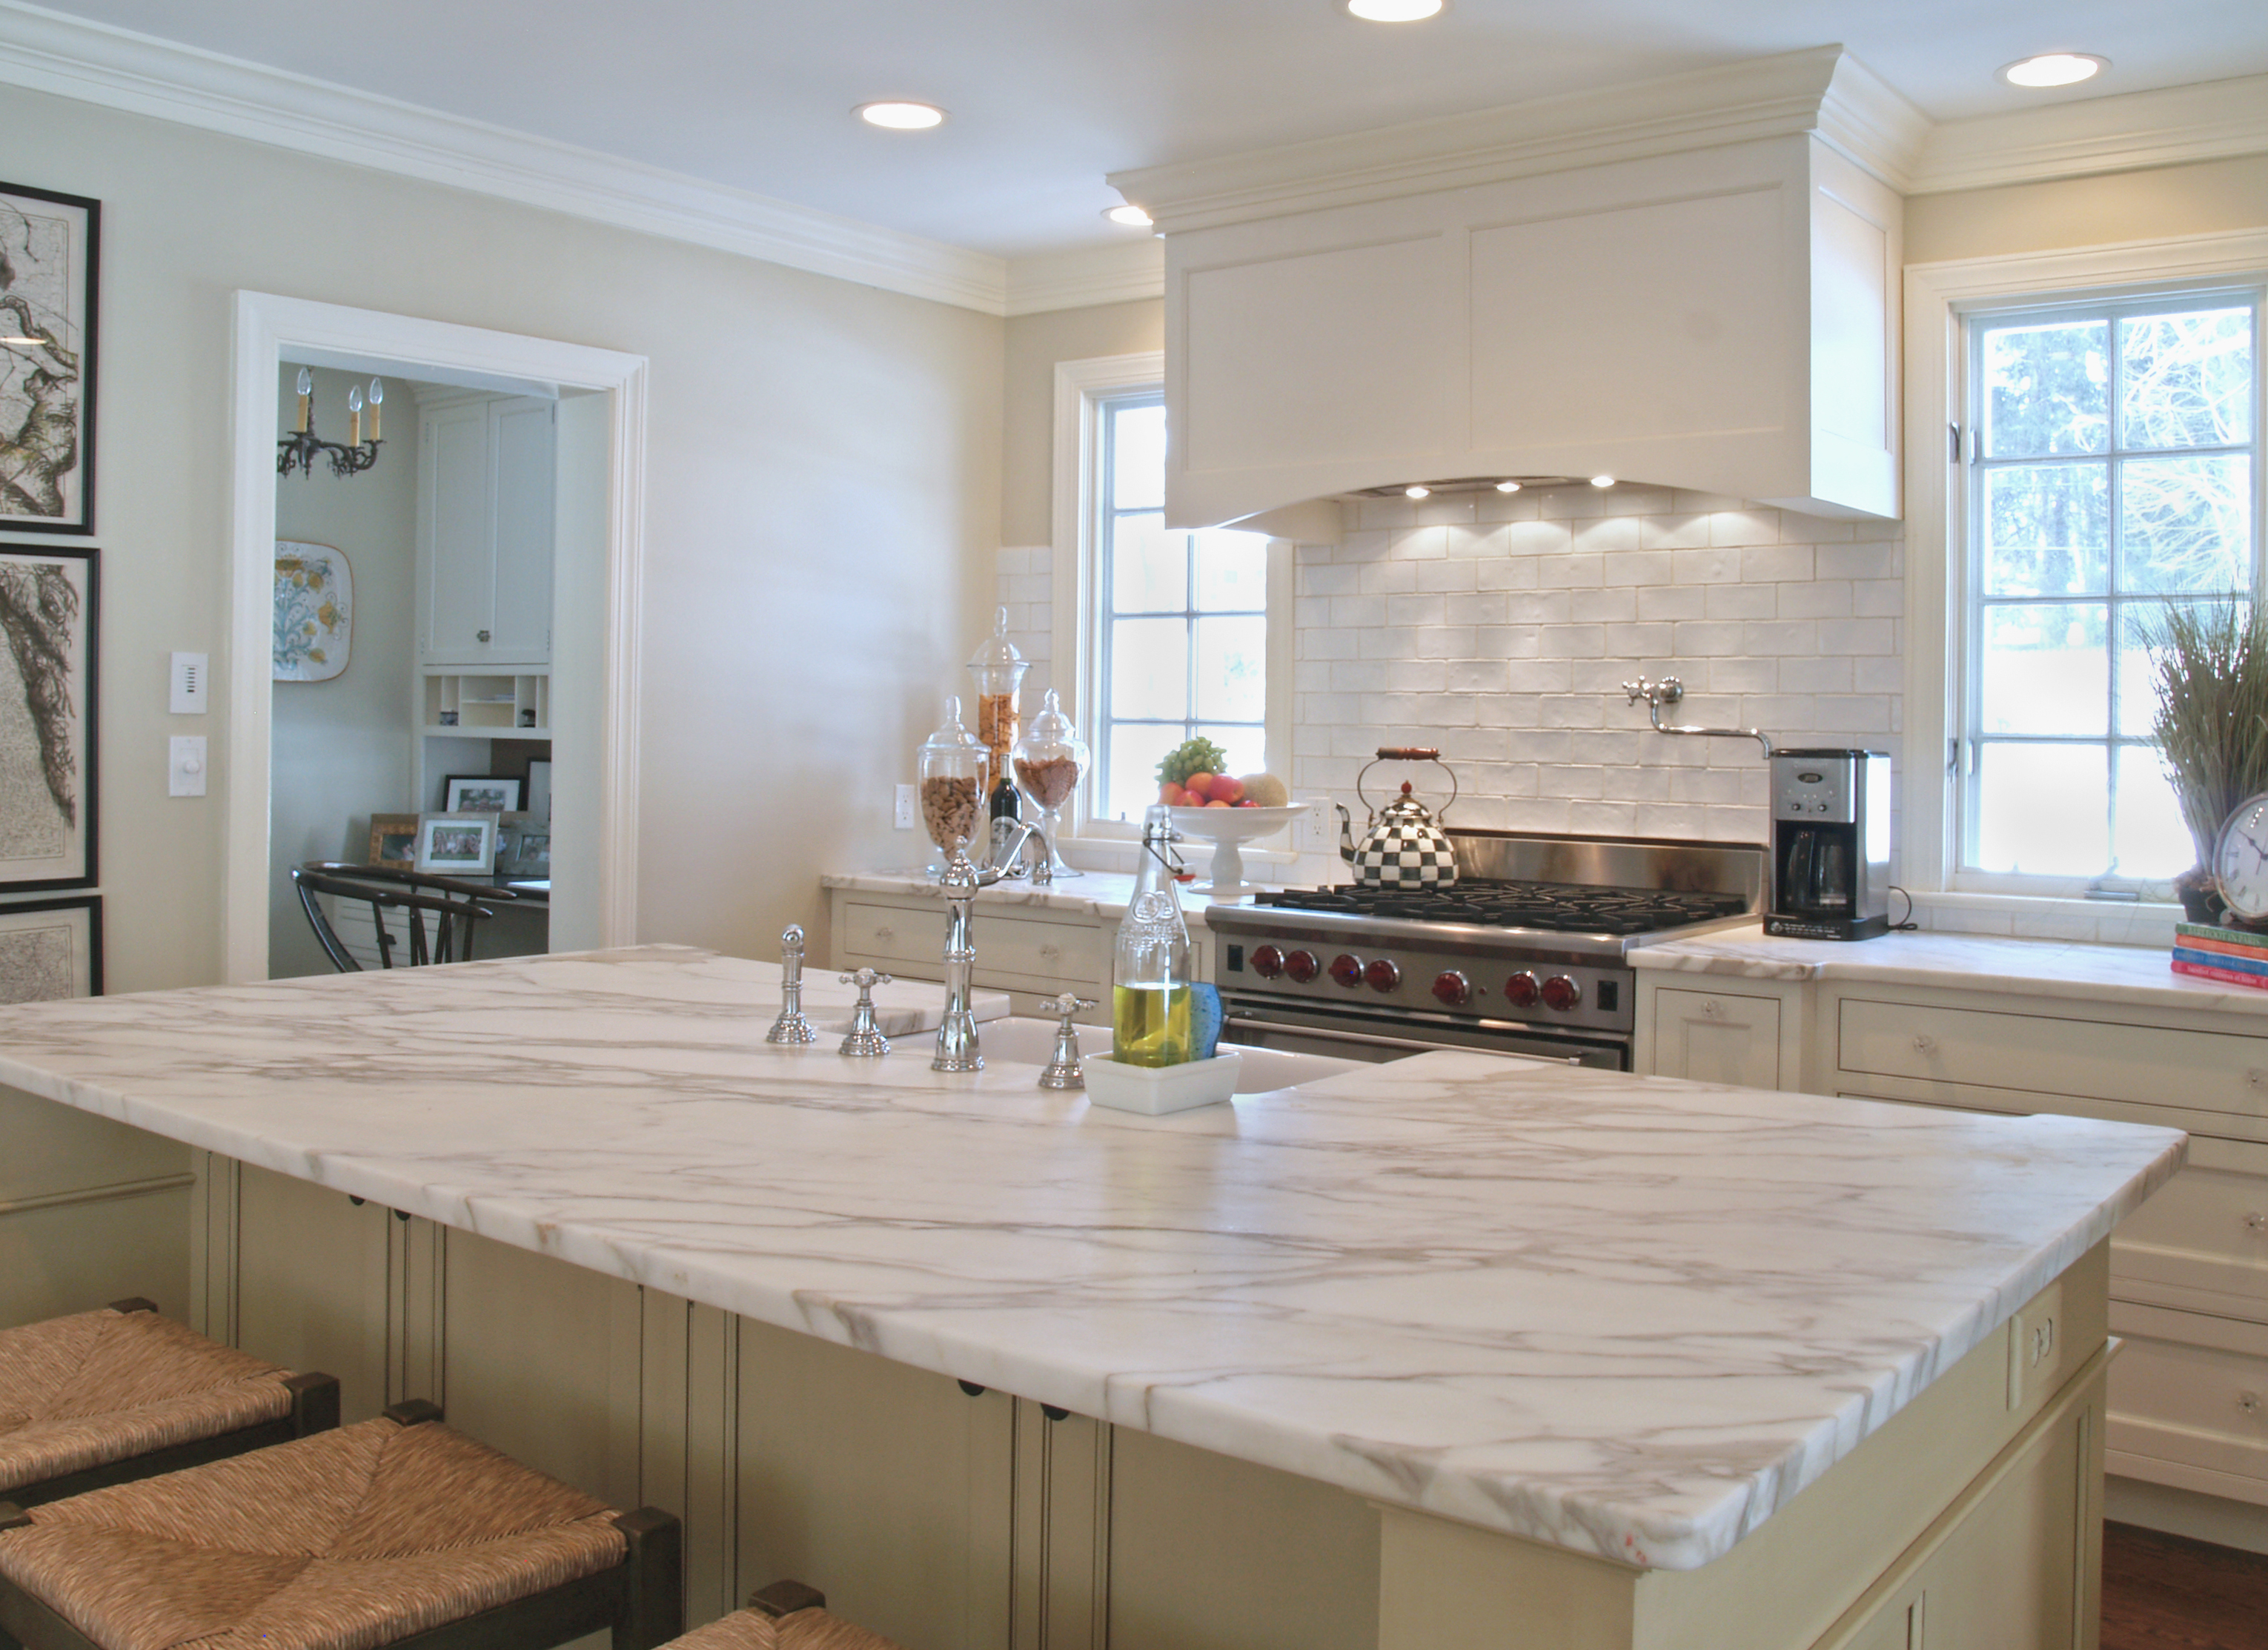 much what countertopsc do countertop average countertops cost architecture how granite design installed of enjoyable white does